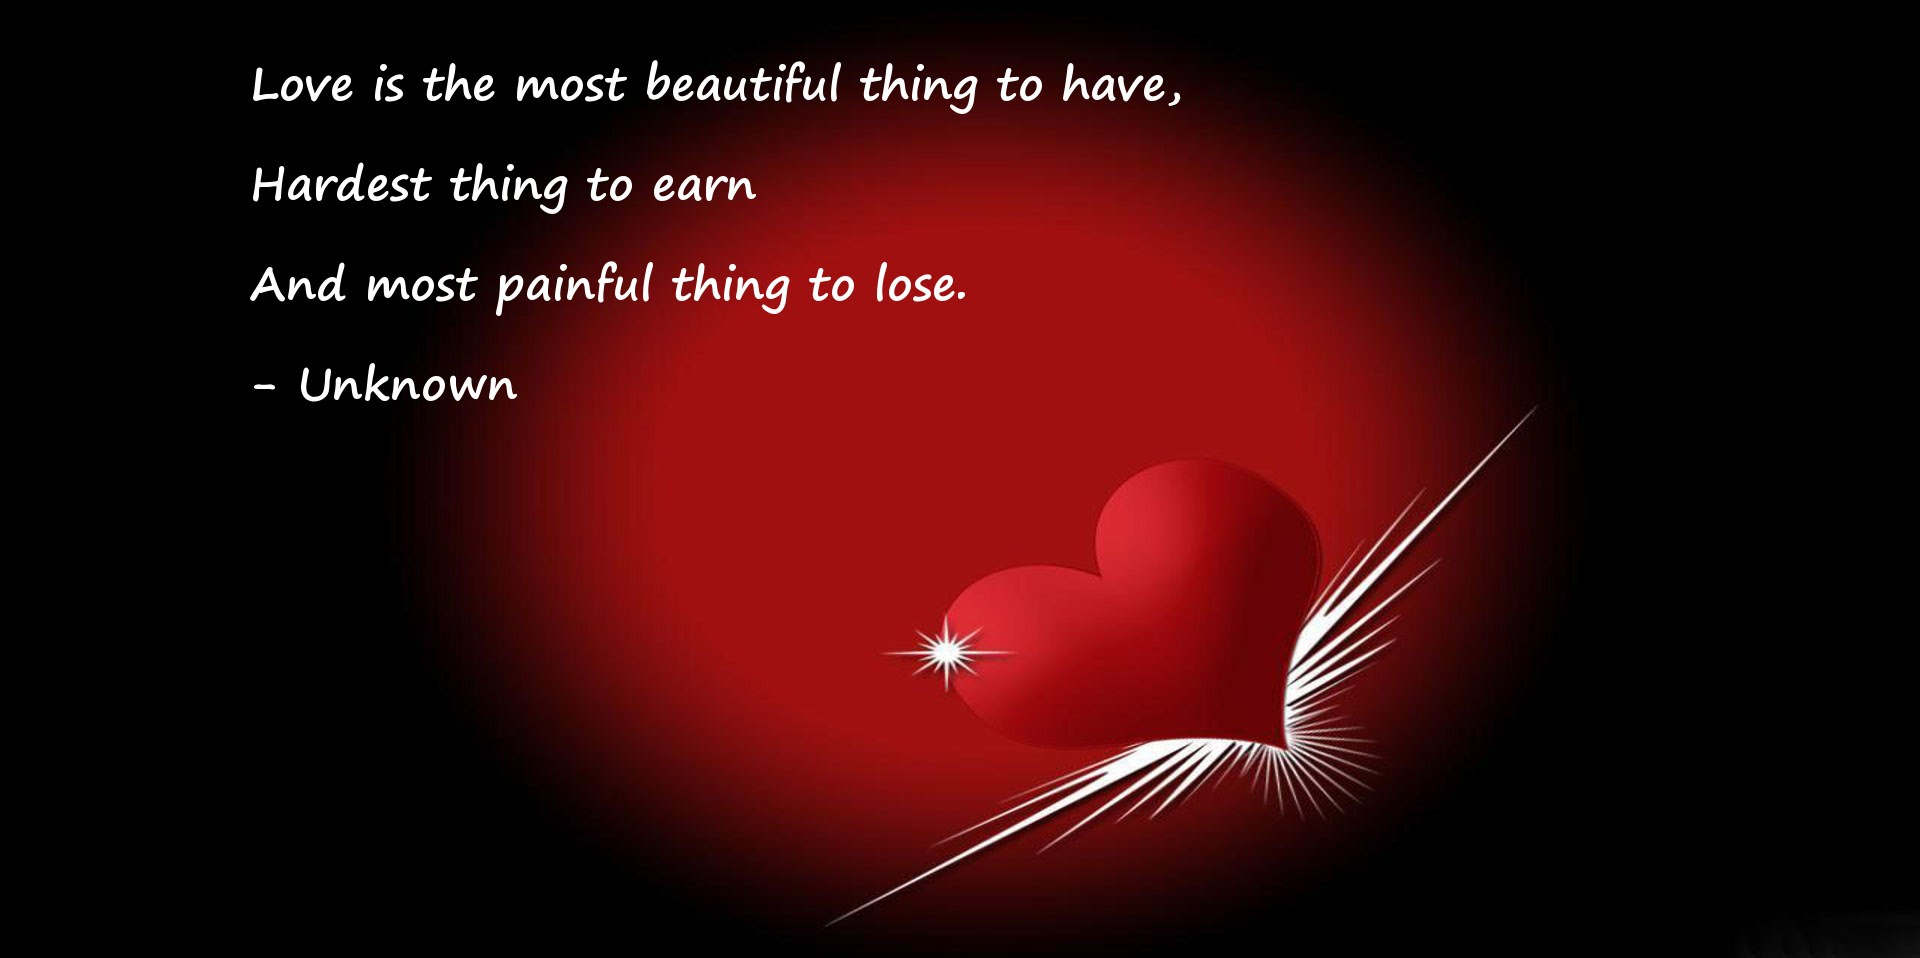 Love Is The Most Beautiful Thing To Have Love Quote Latestwall